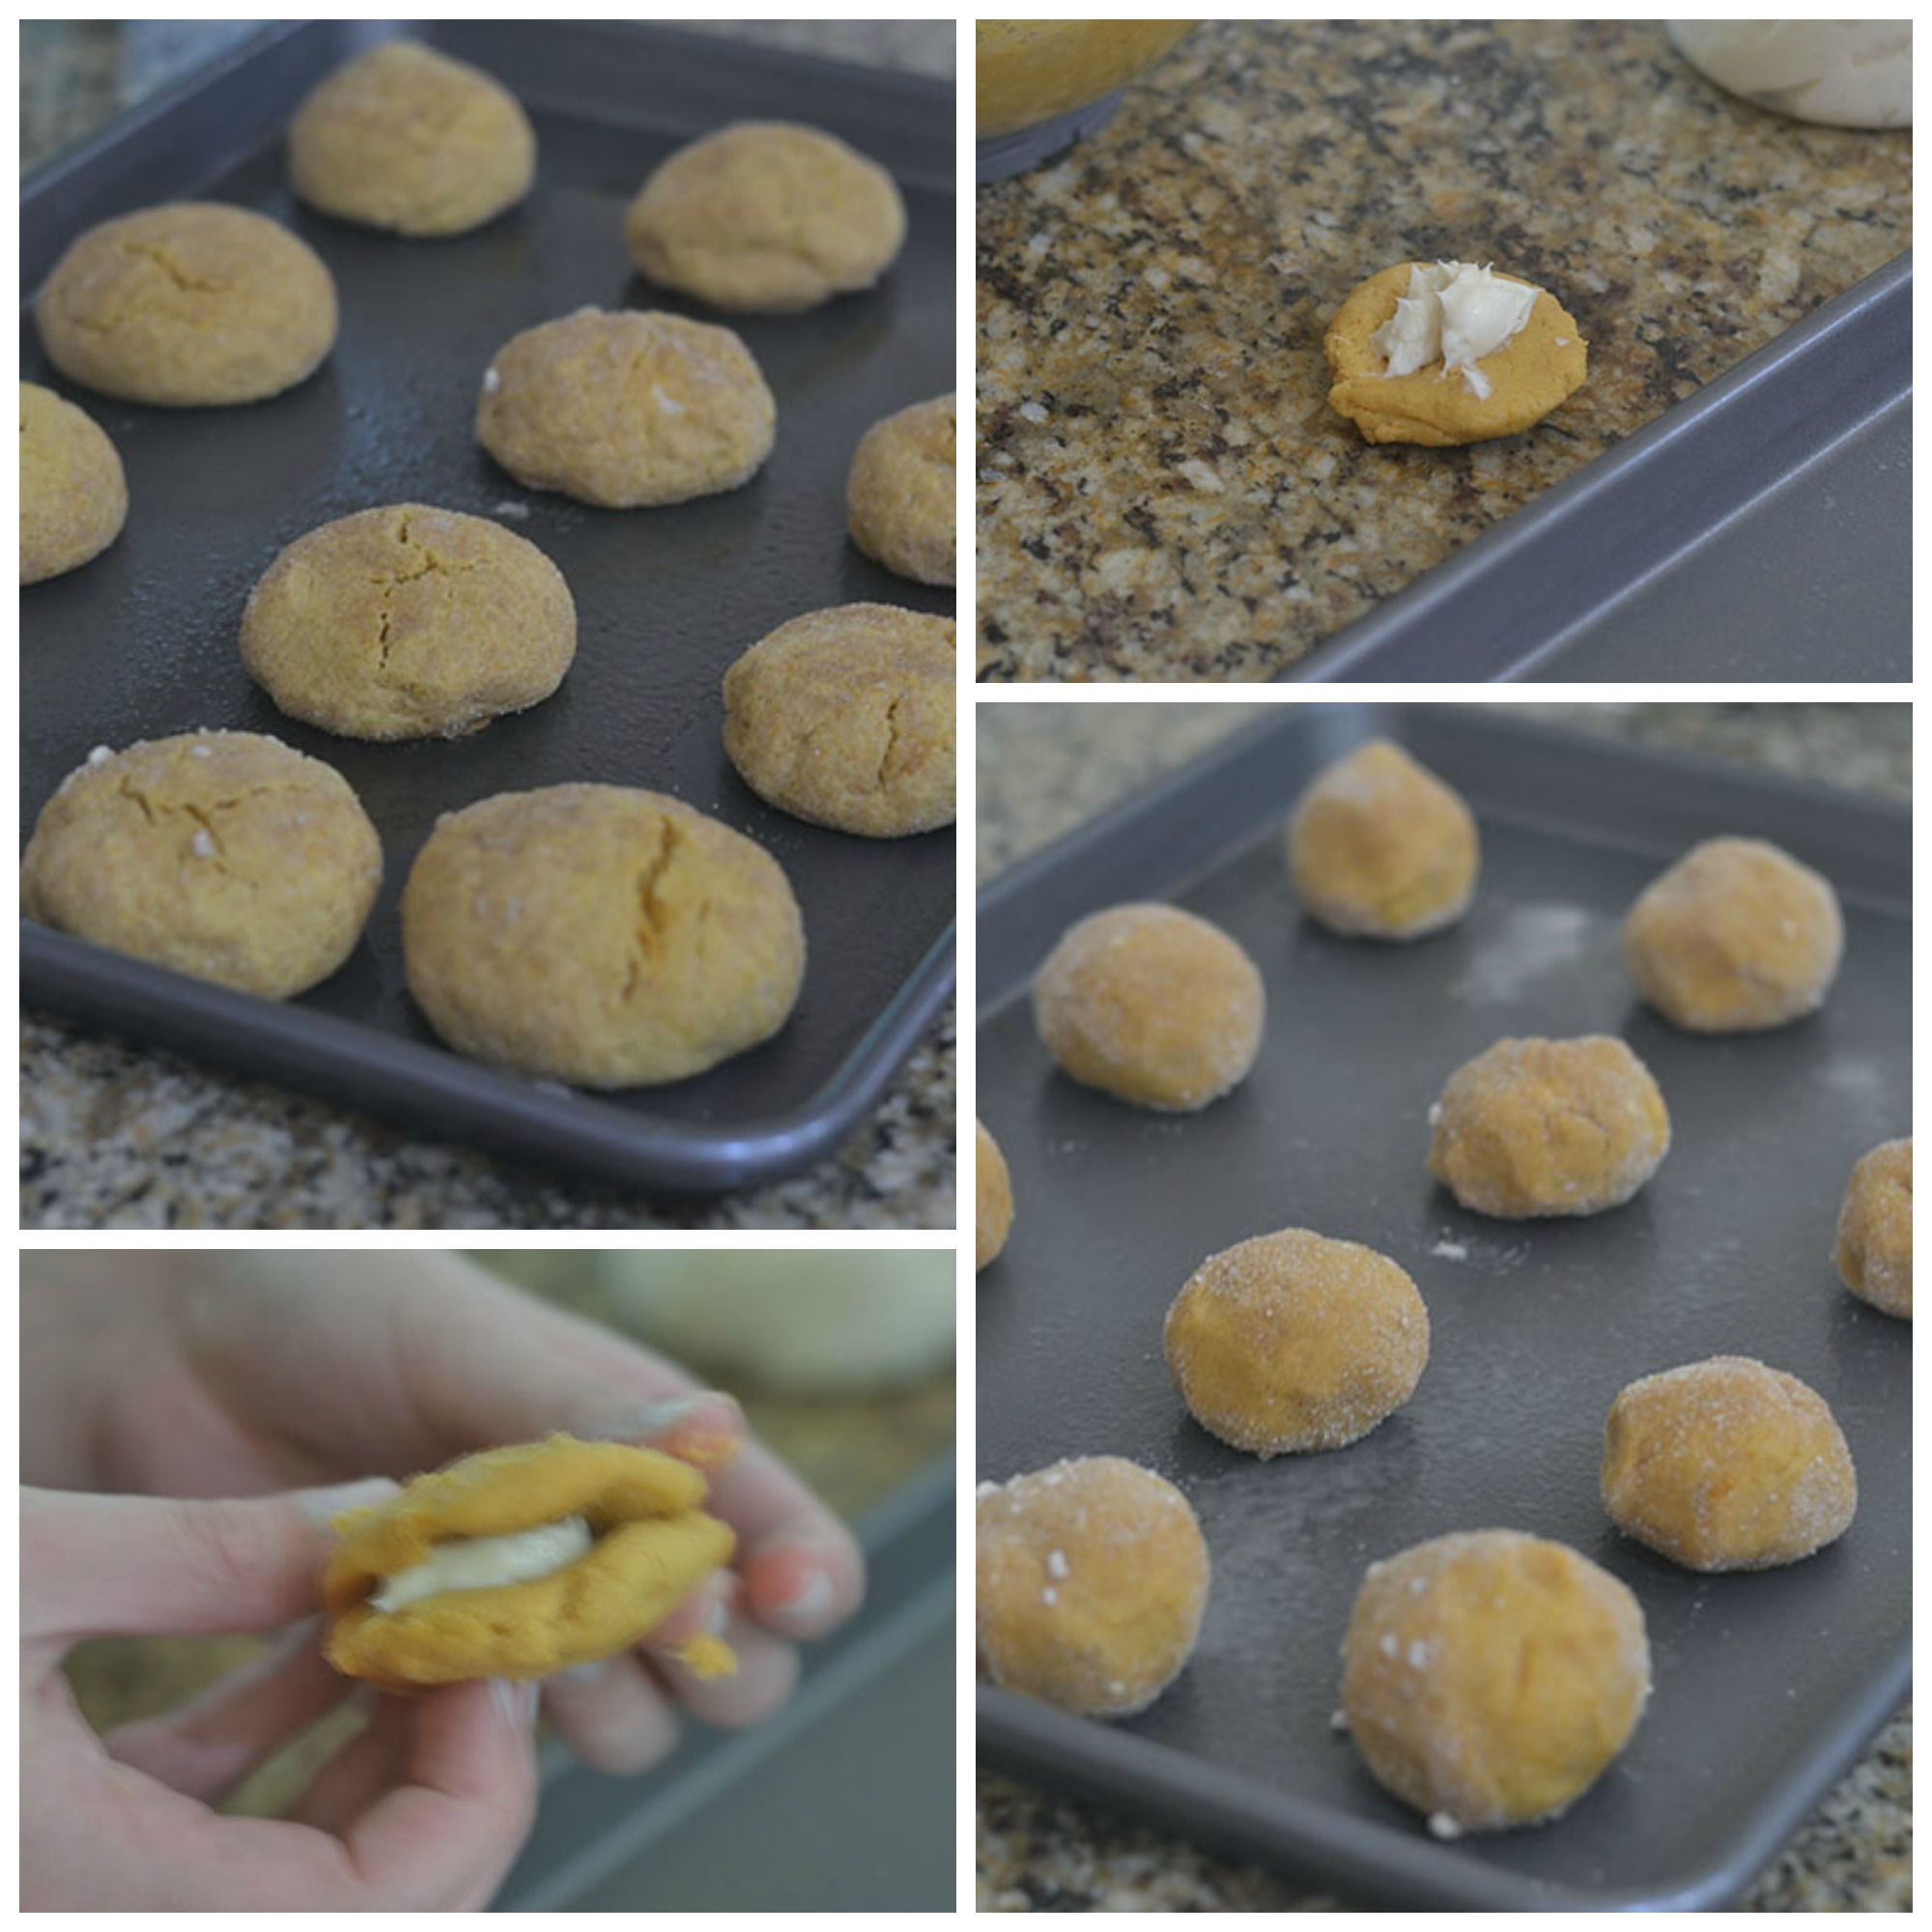 Cookies Formed and Baked